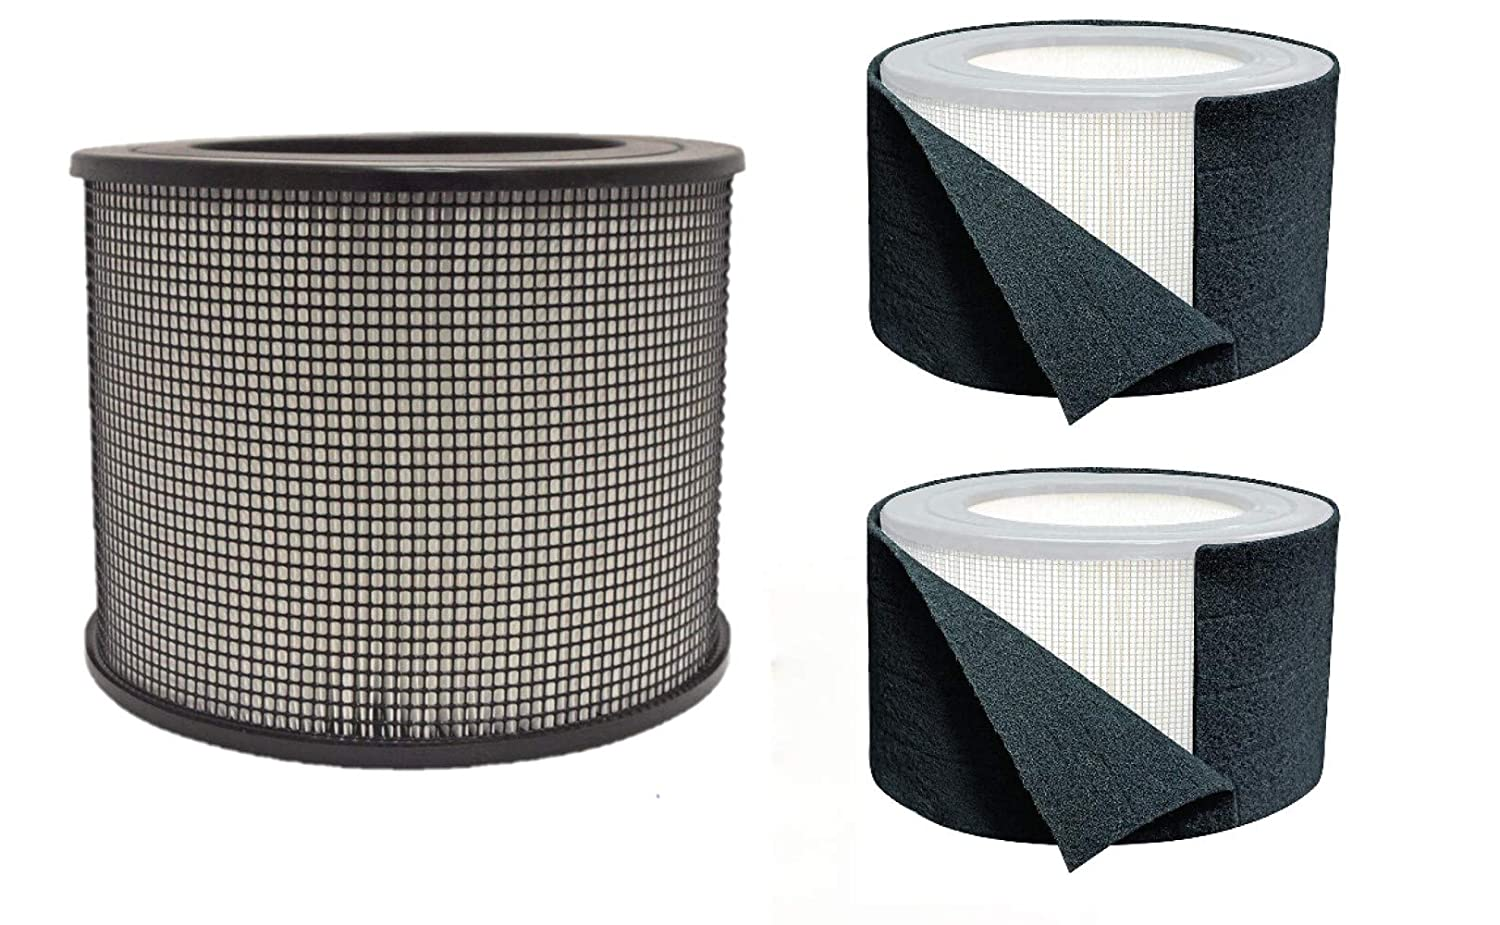 Honeywell Replacement Filter Kit 50250-S - 24000 True HEPA Filter and Pre Cut Carbon Pre Filter Wraps (1 HEPA Filter + 1 Carbon Wrap)